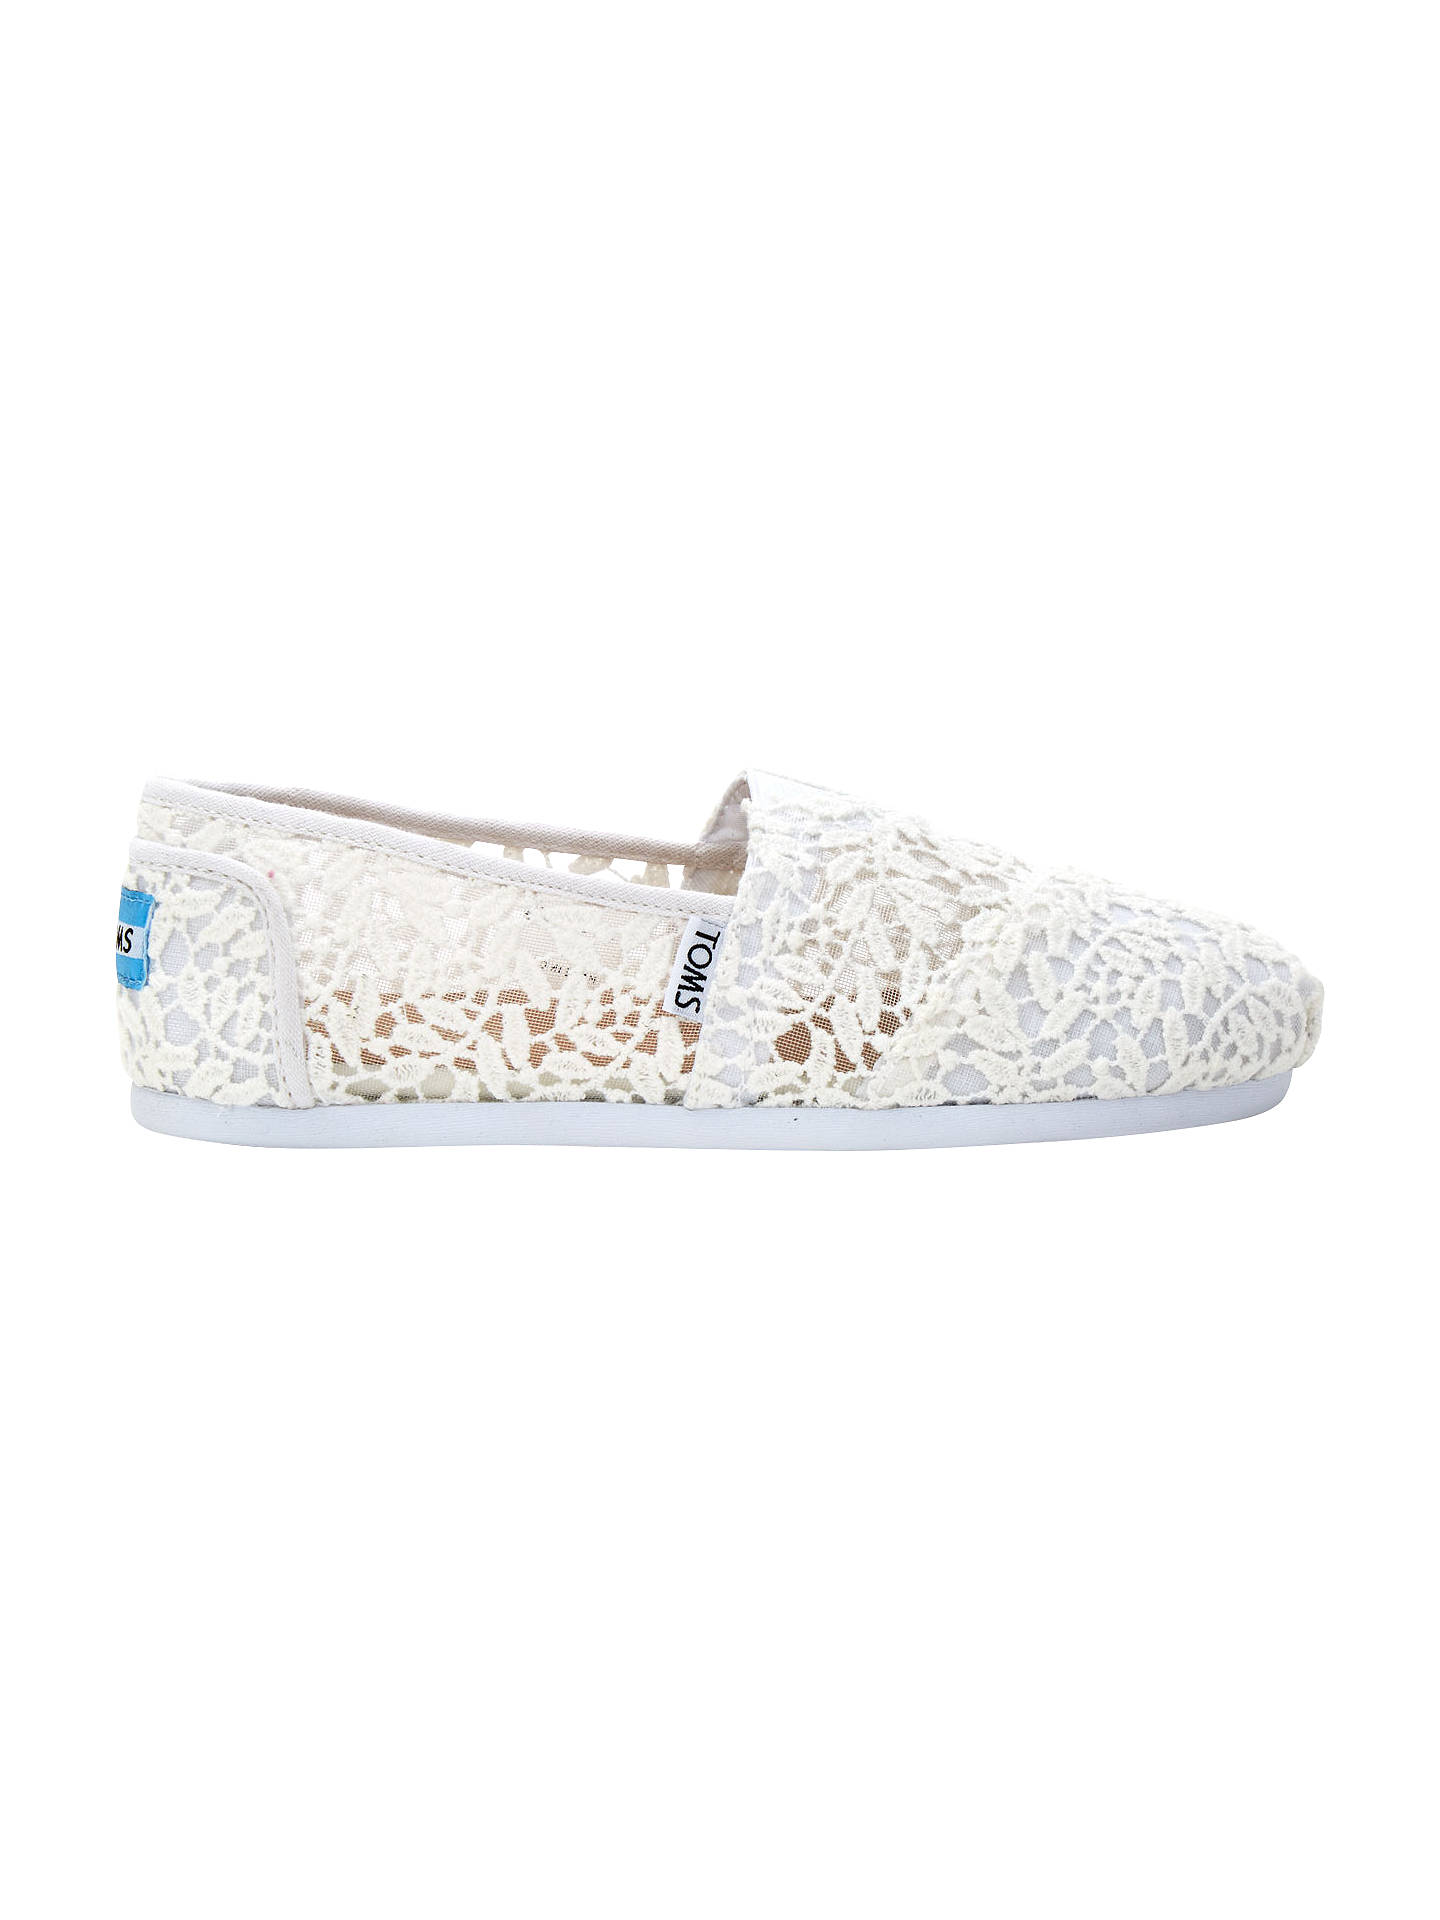 5b64aaf6d08 Buy TOMS Alpargata Lace Slip On Espadrilles